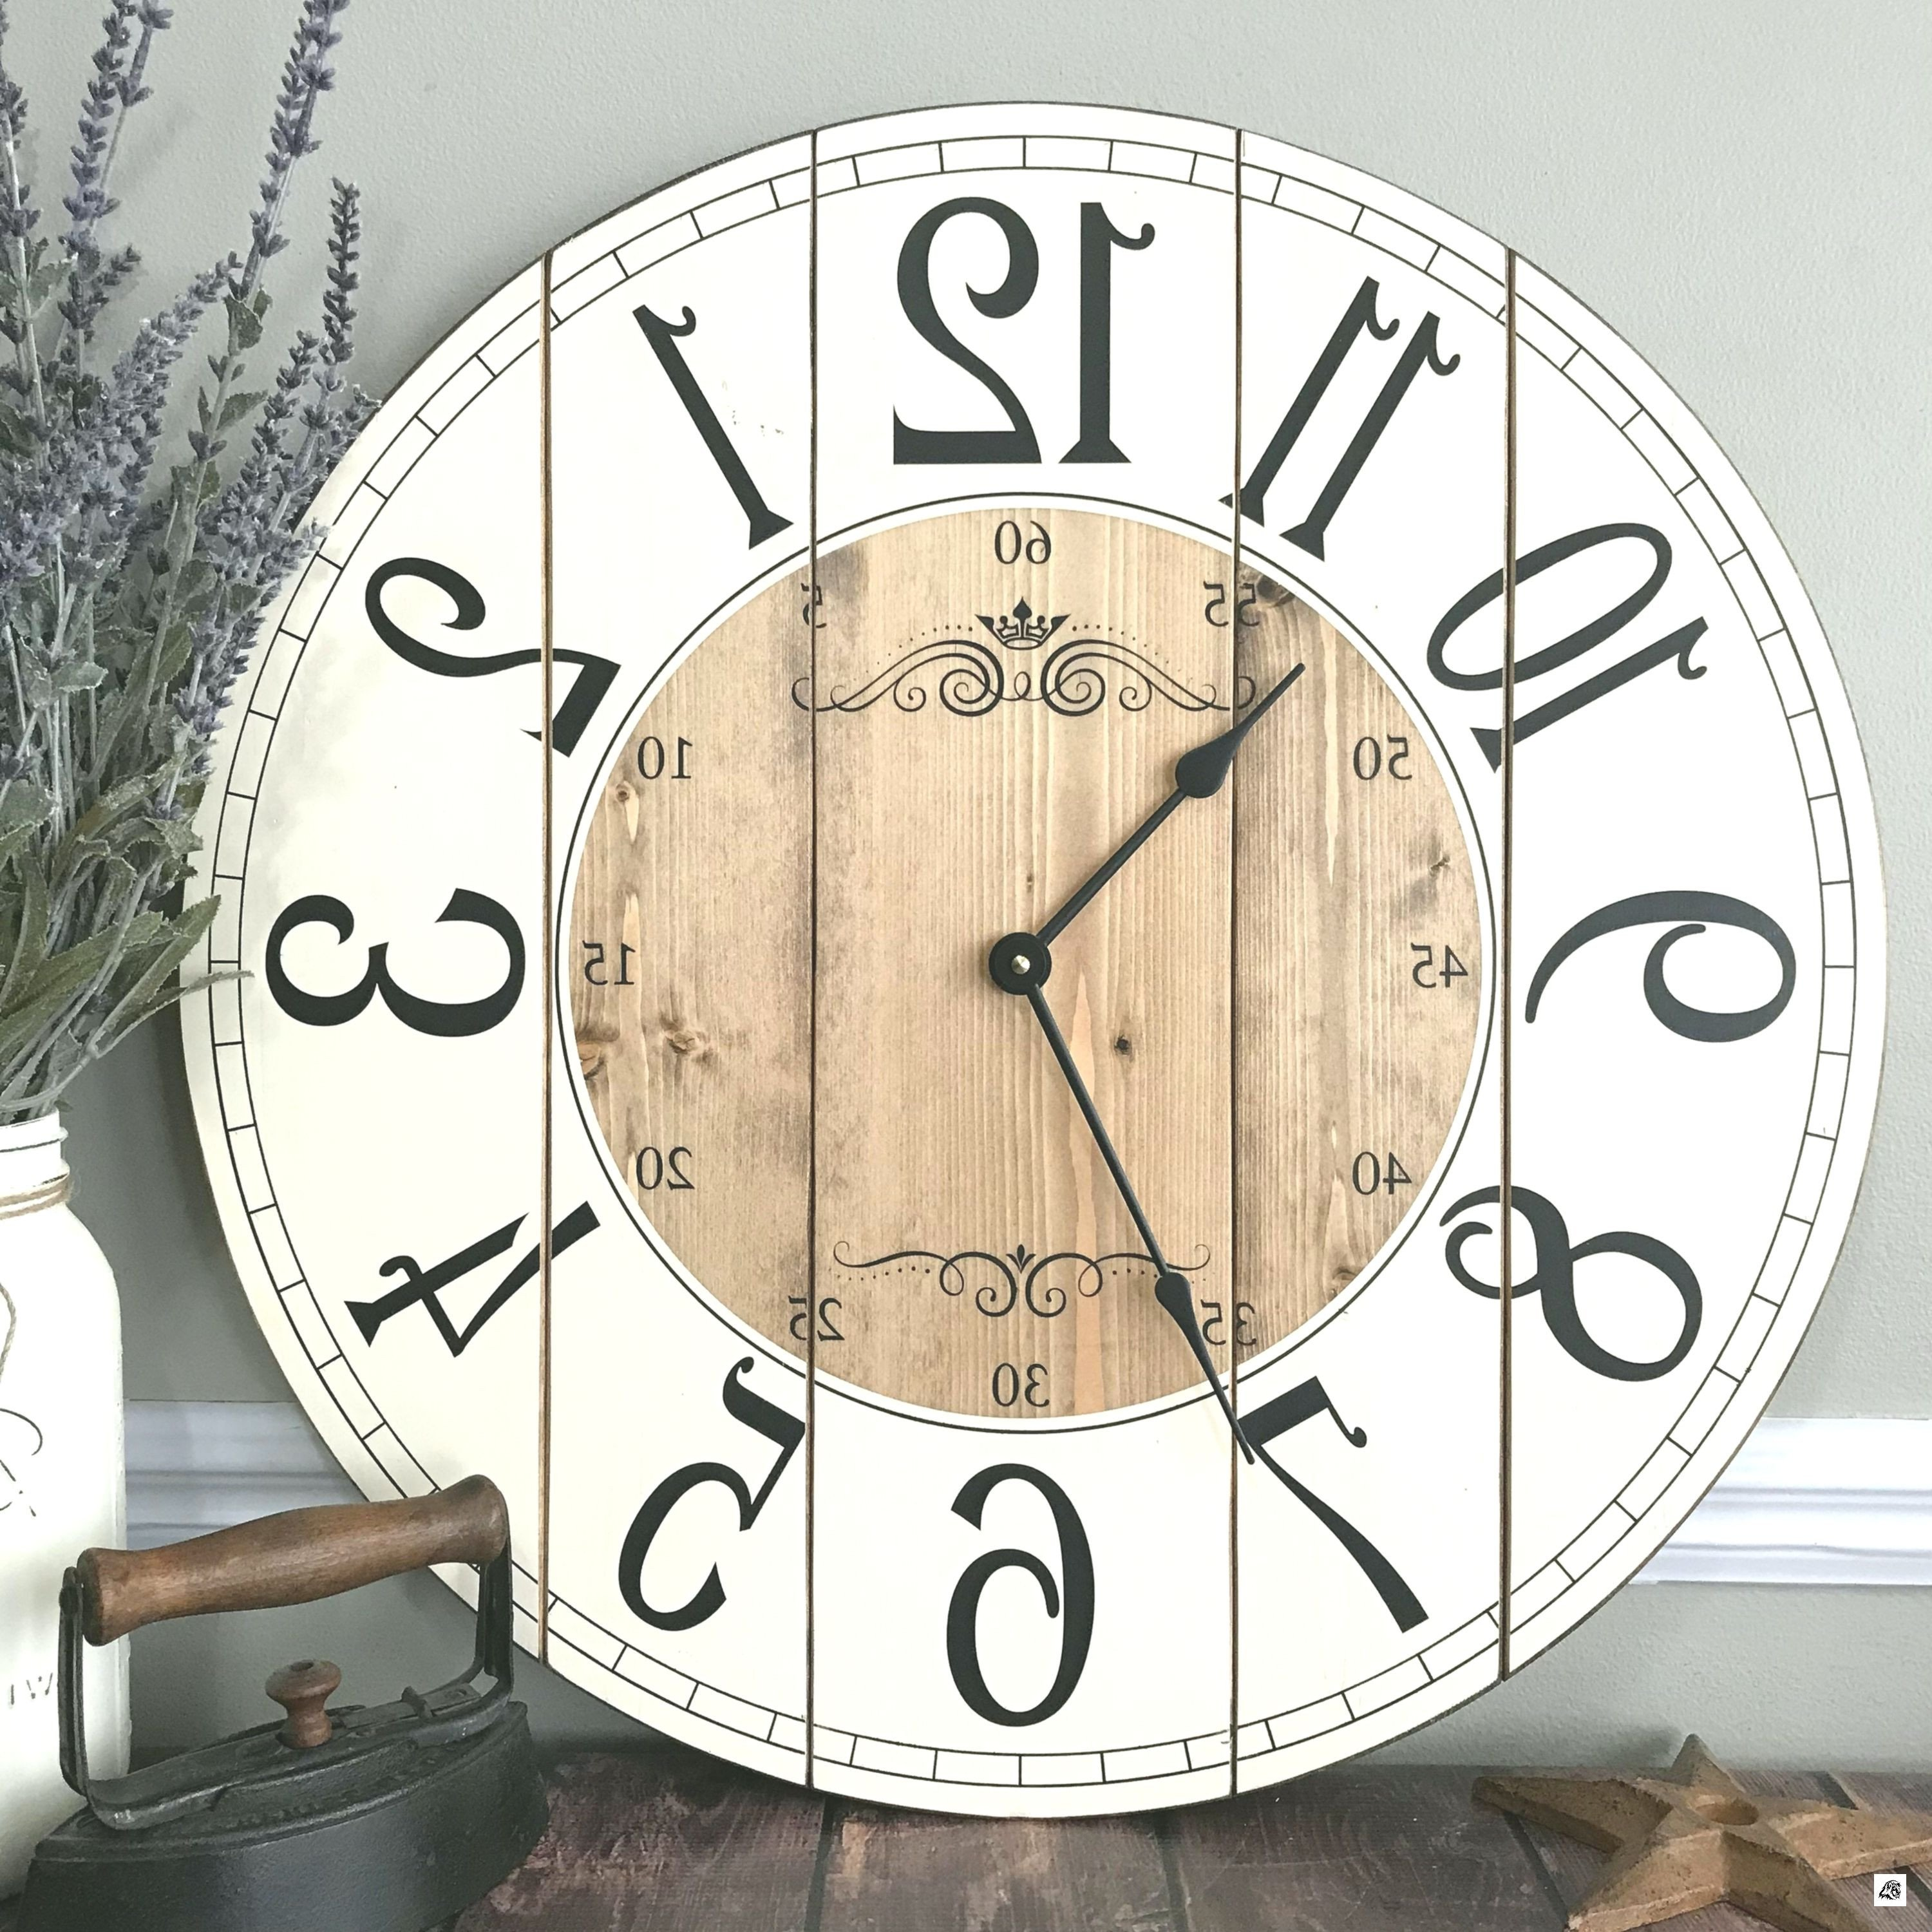 Rustic Bedroom Wall Decor Awesome 22 Inch Farmhouse Clock Rustic Wall Clock Wall Clock